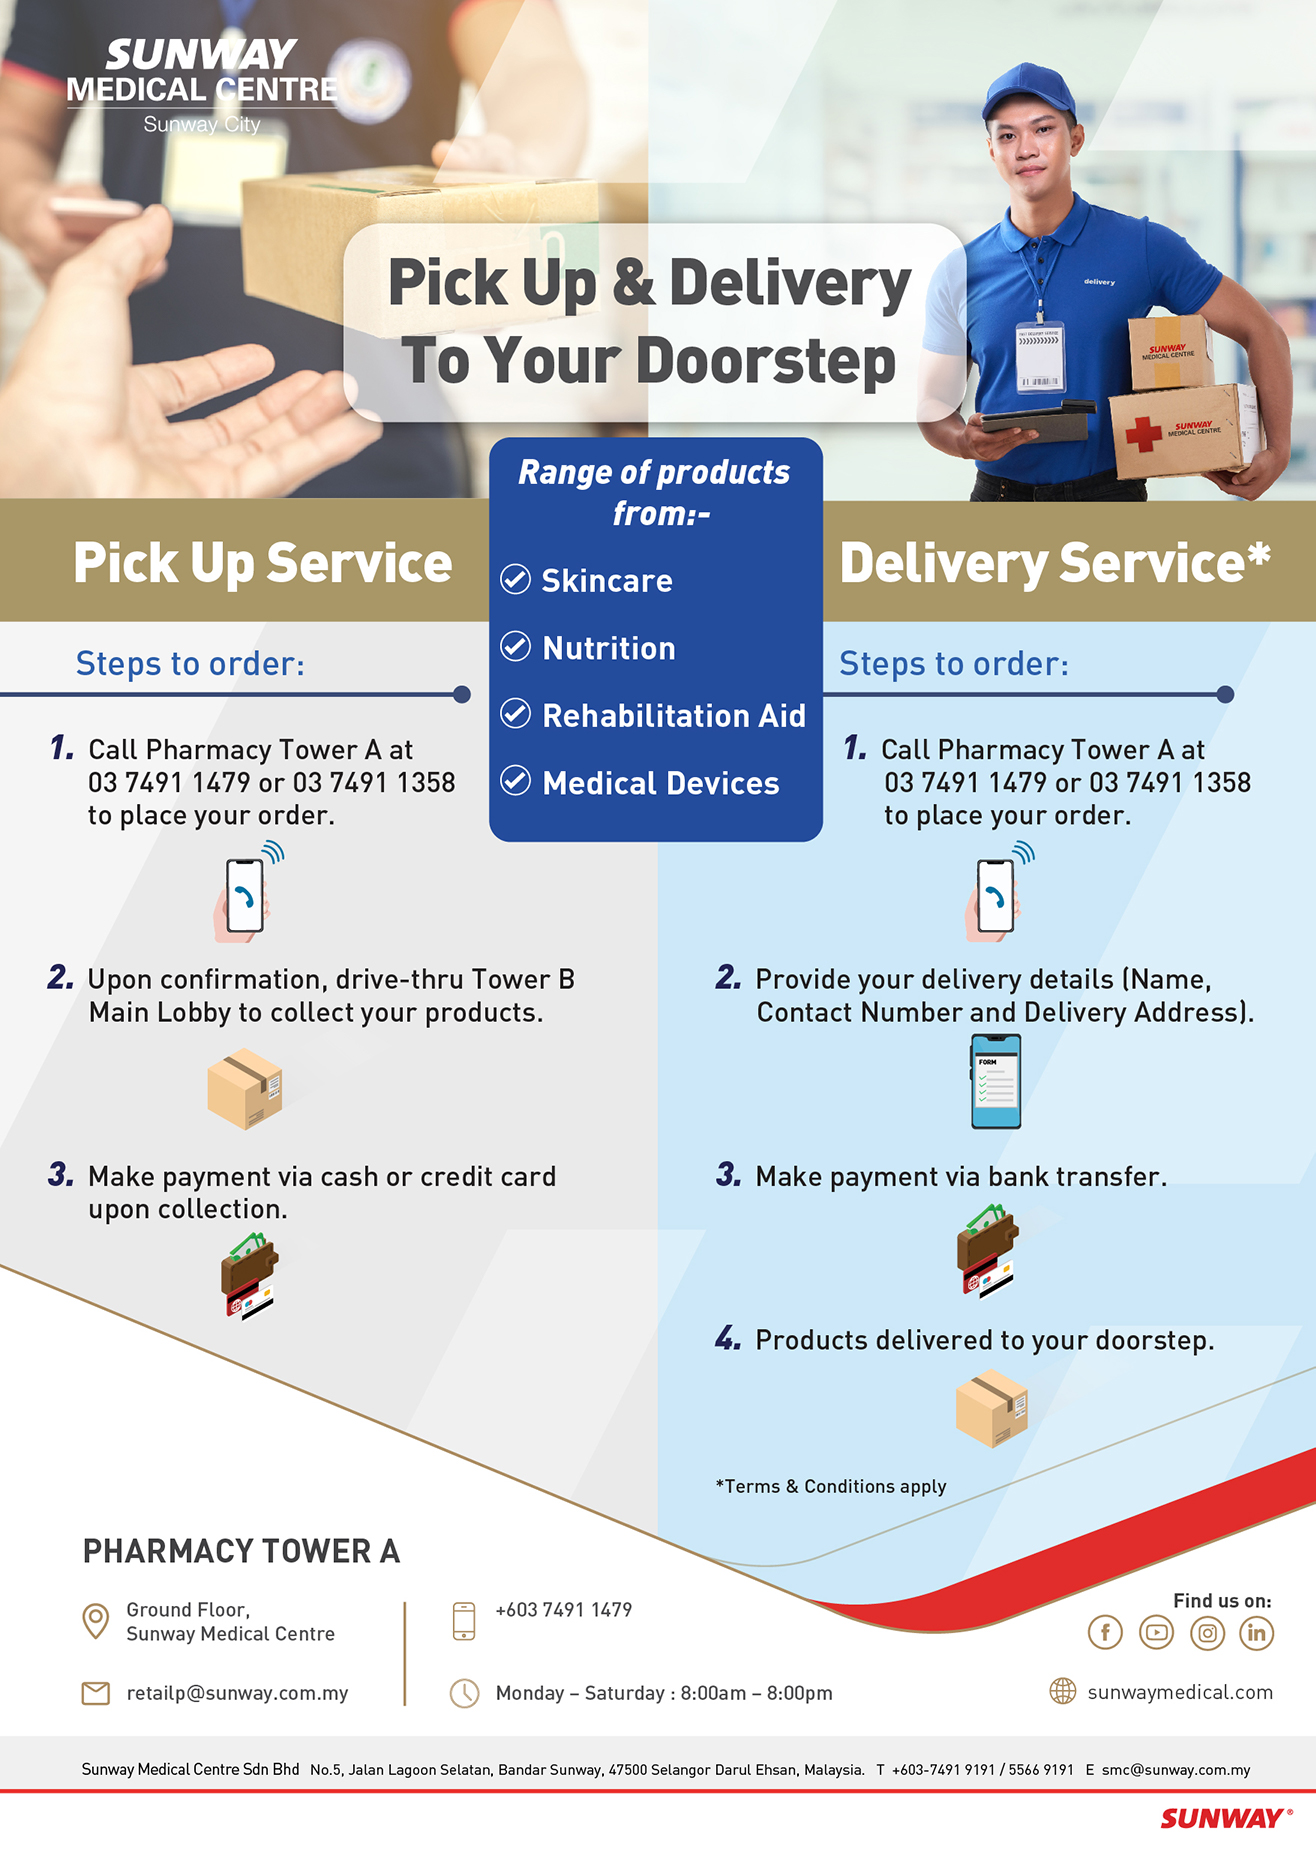 Pick Up & Delivery To Your Doorstep